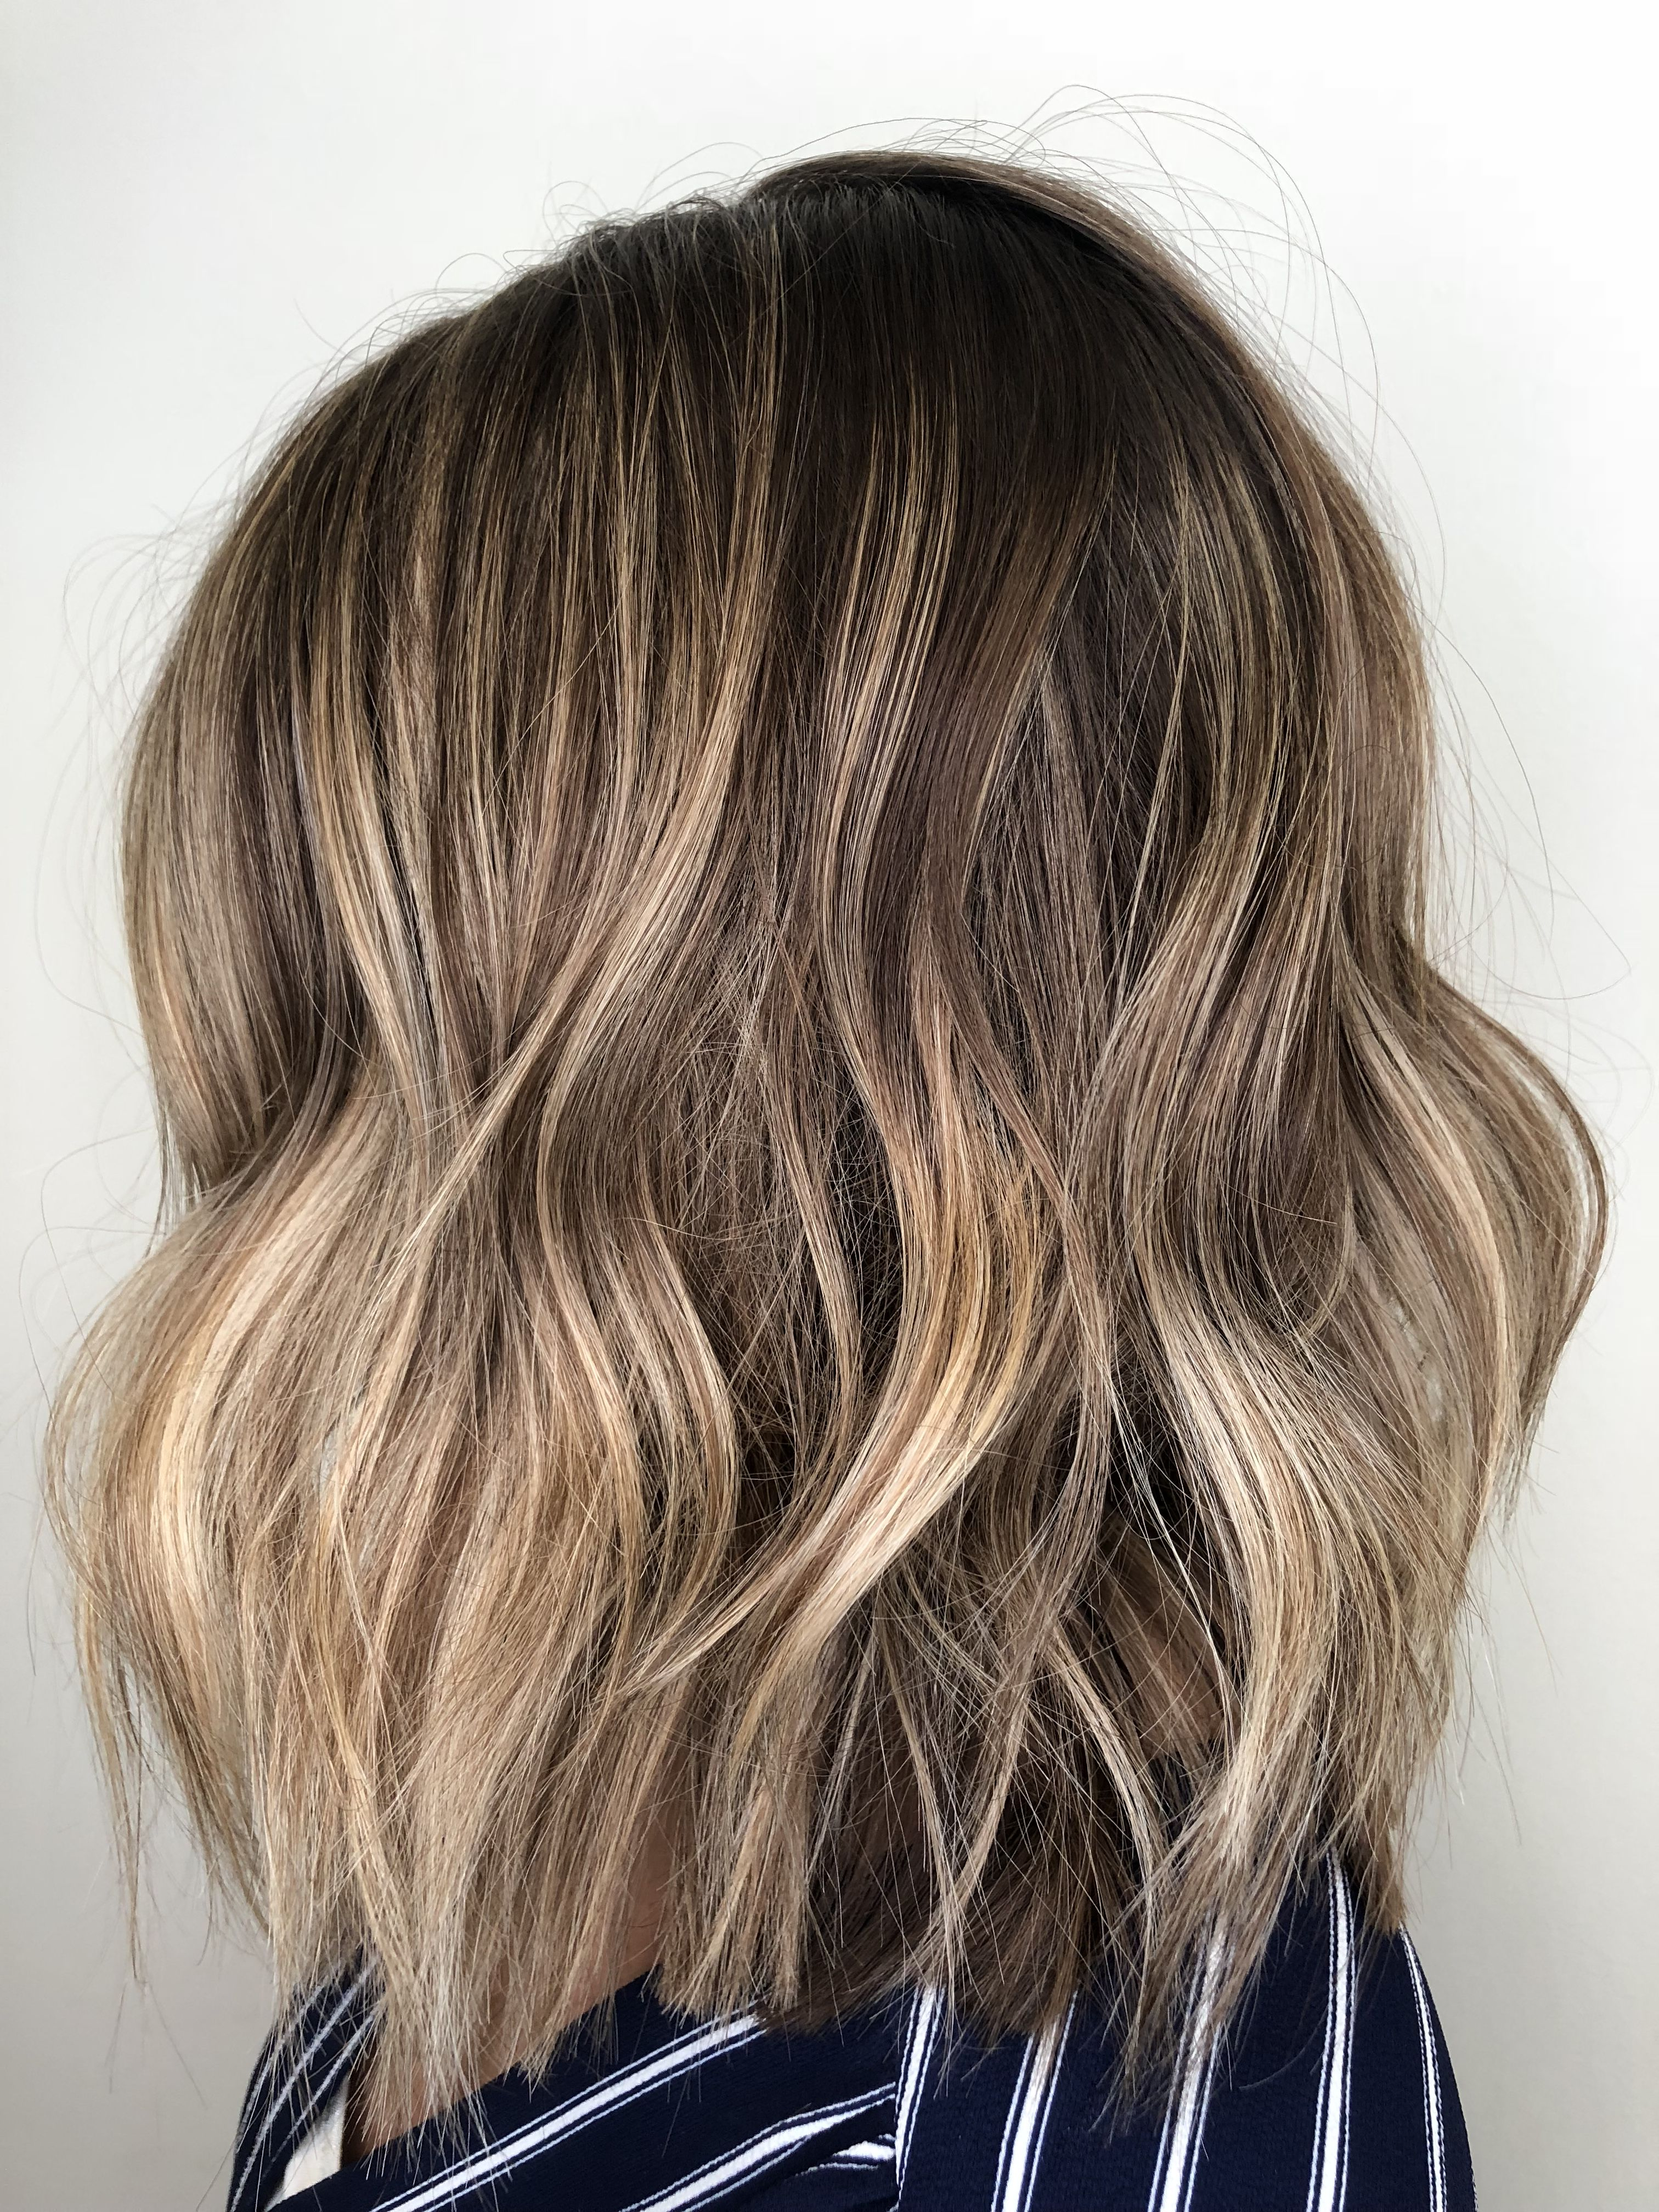 Hair Colors For Each Of The Zodiac Signs - Society19